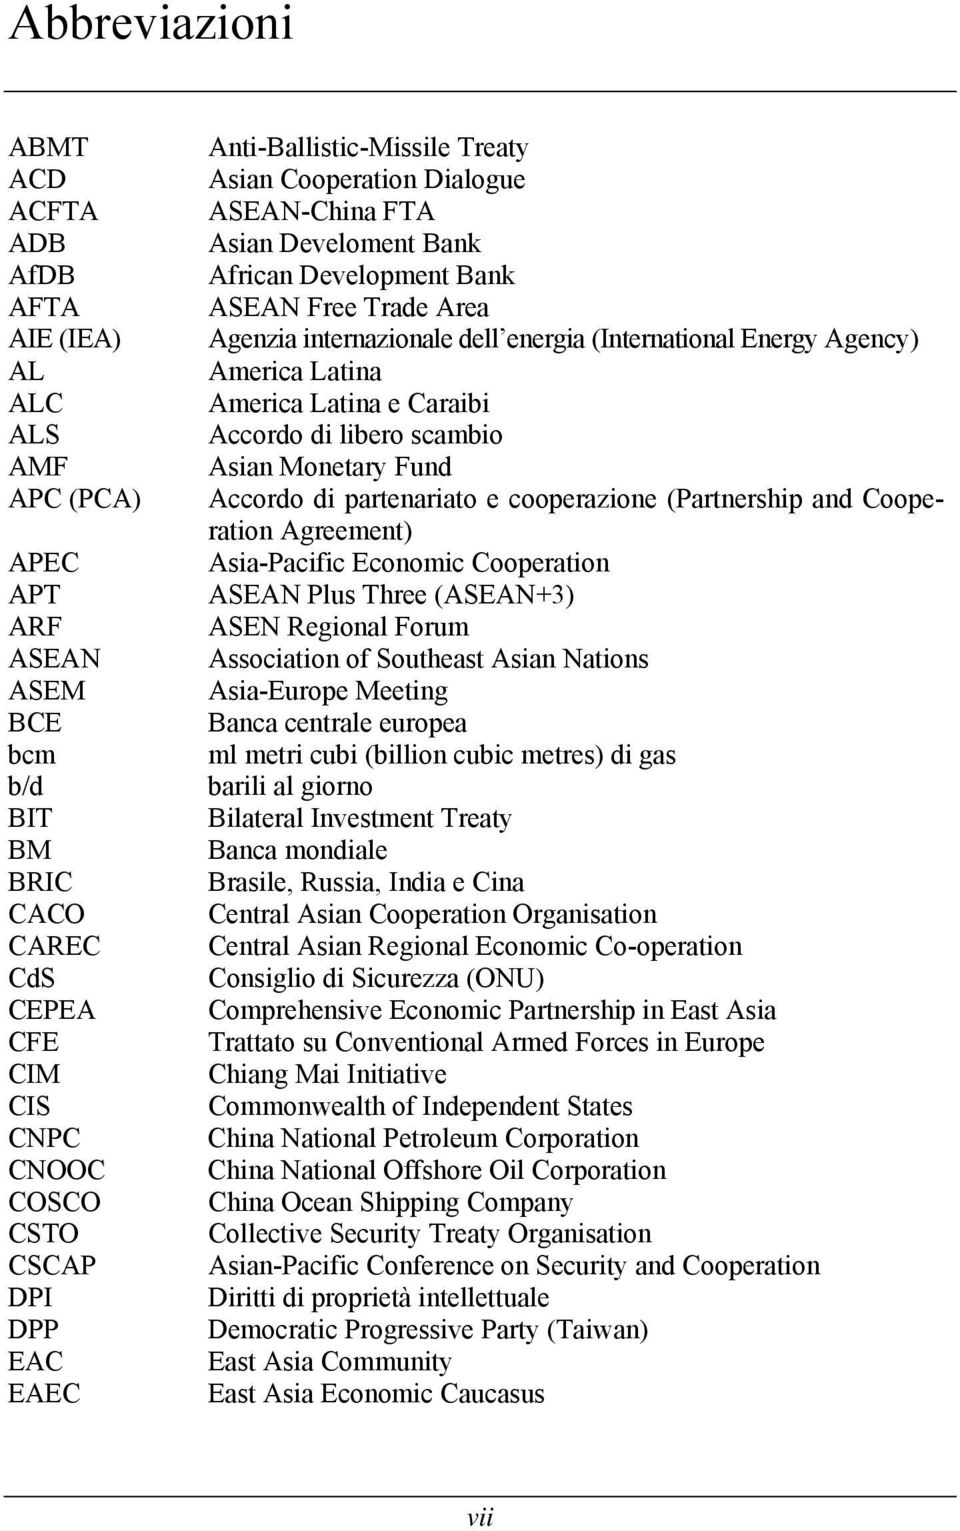 Energy Agency) America Latina America Latina e Caraibi Accordo di libero scambio Asian Monetary Fund Accordo di partenariato e cooperazione (Partnership and Cooperation Agreement) Asia-Pacific